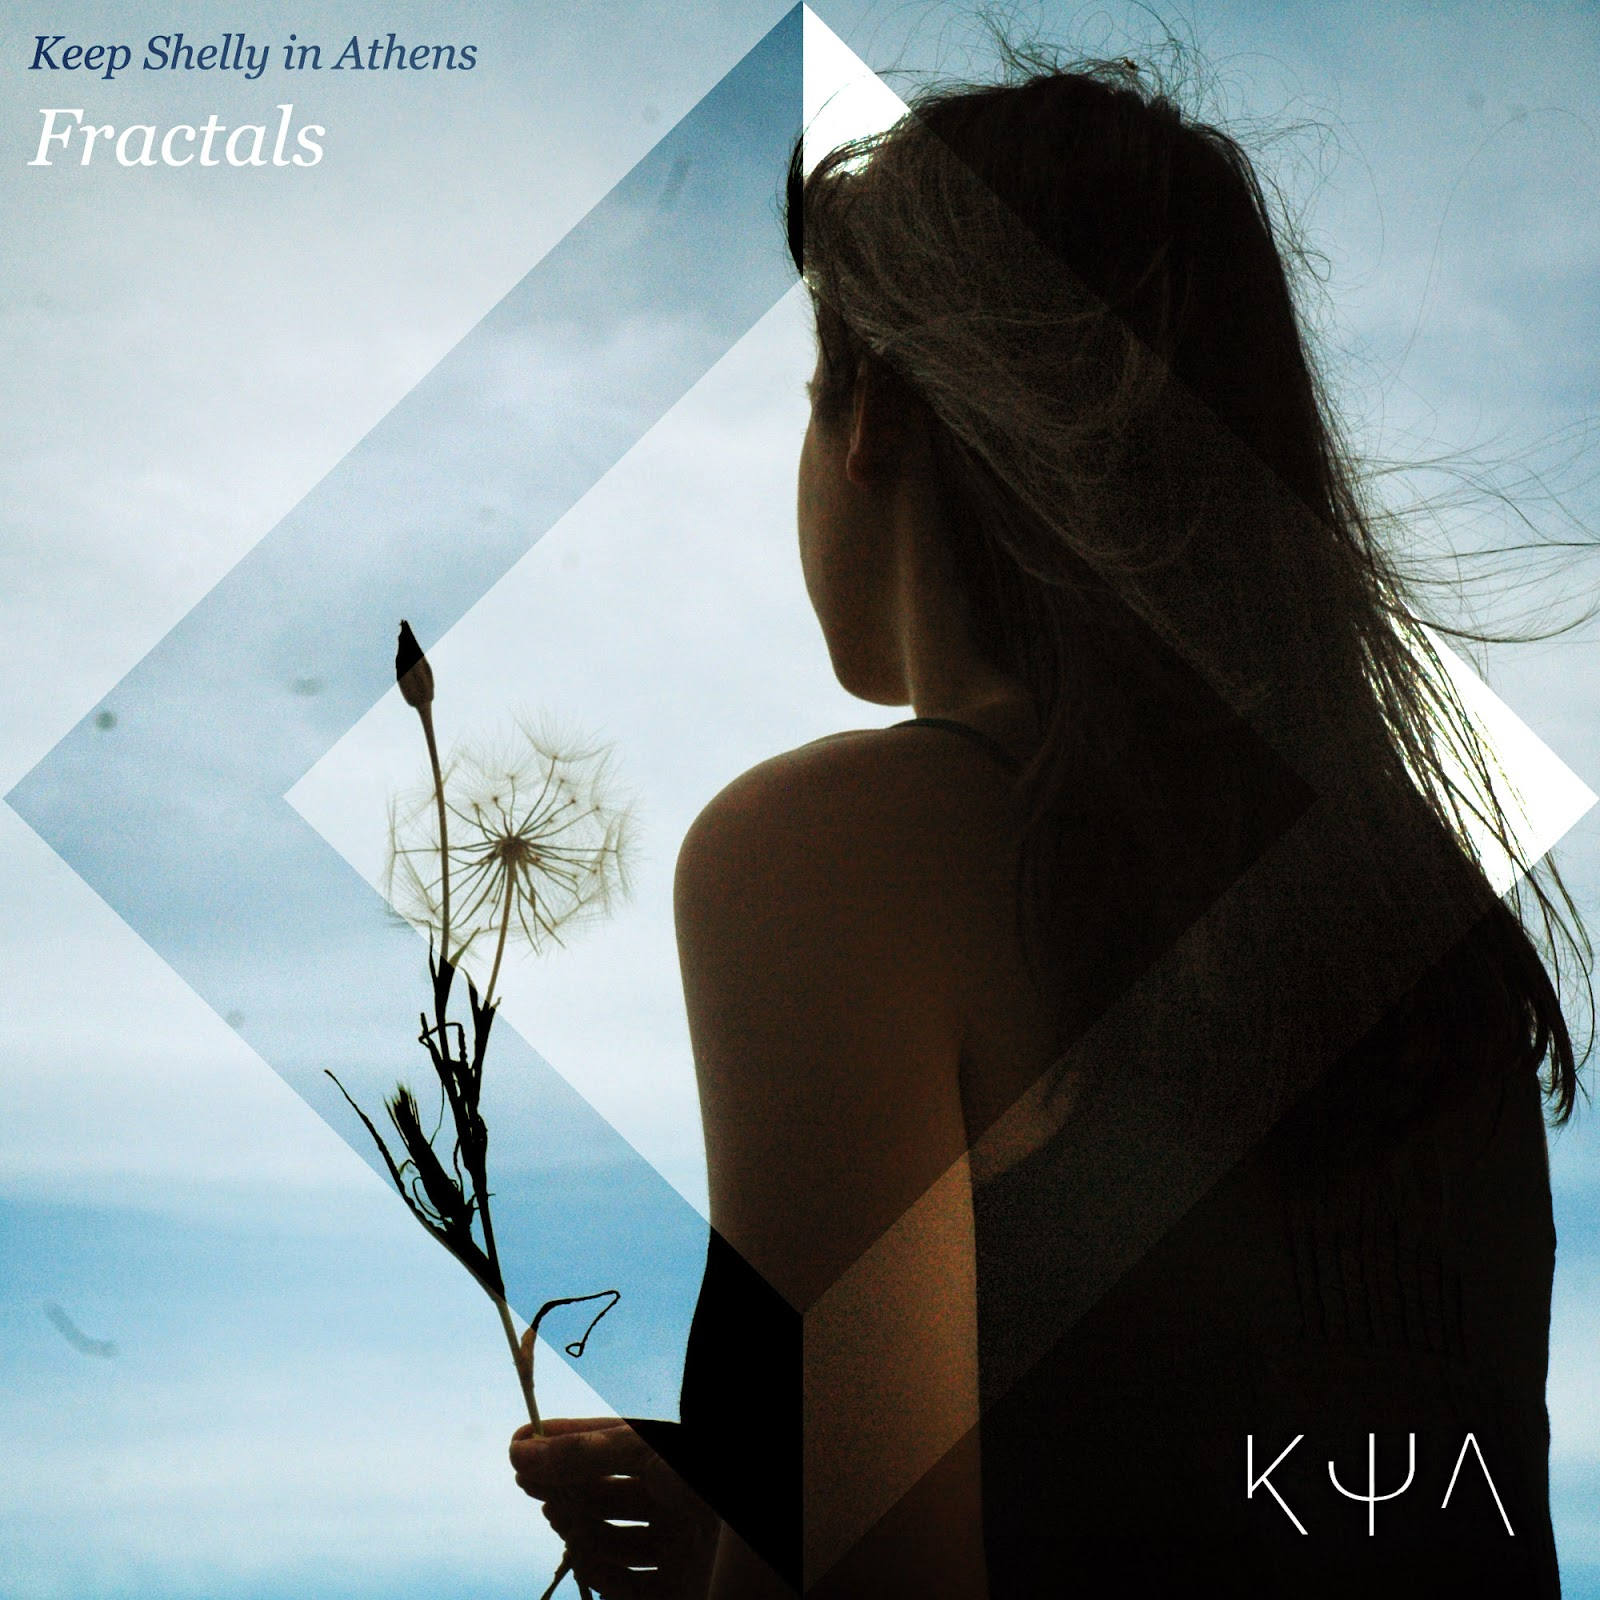 keep-shelly-athens-ksia-fractals